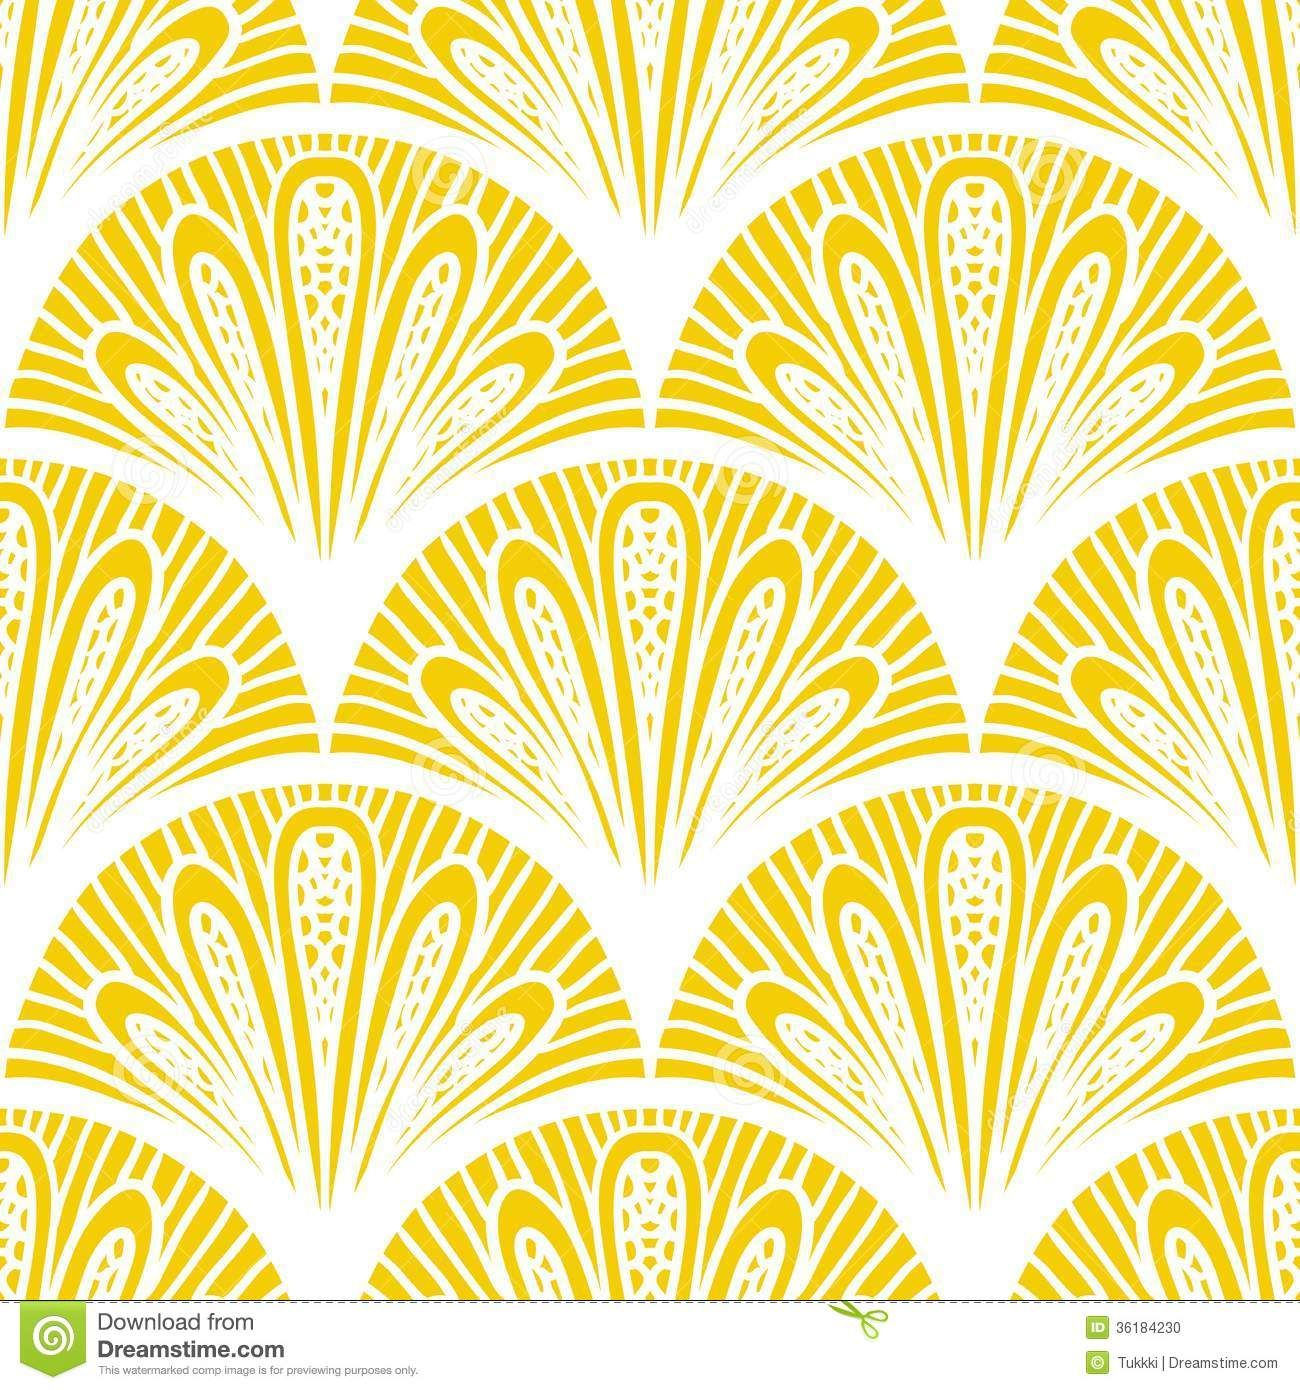 1920s Art Deco Patterns